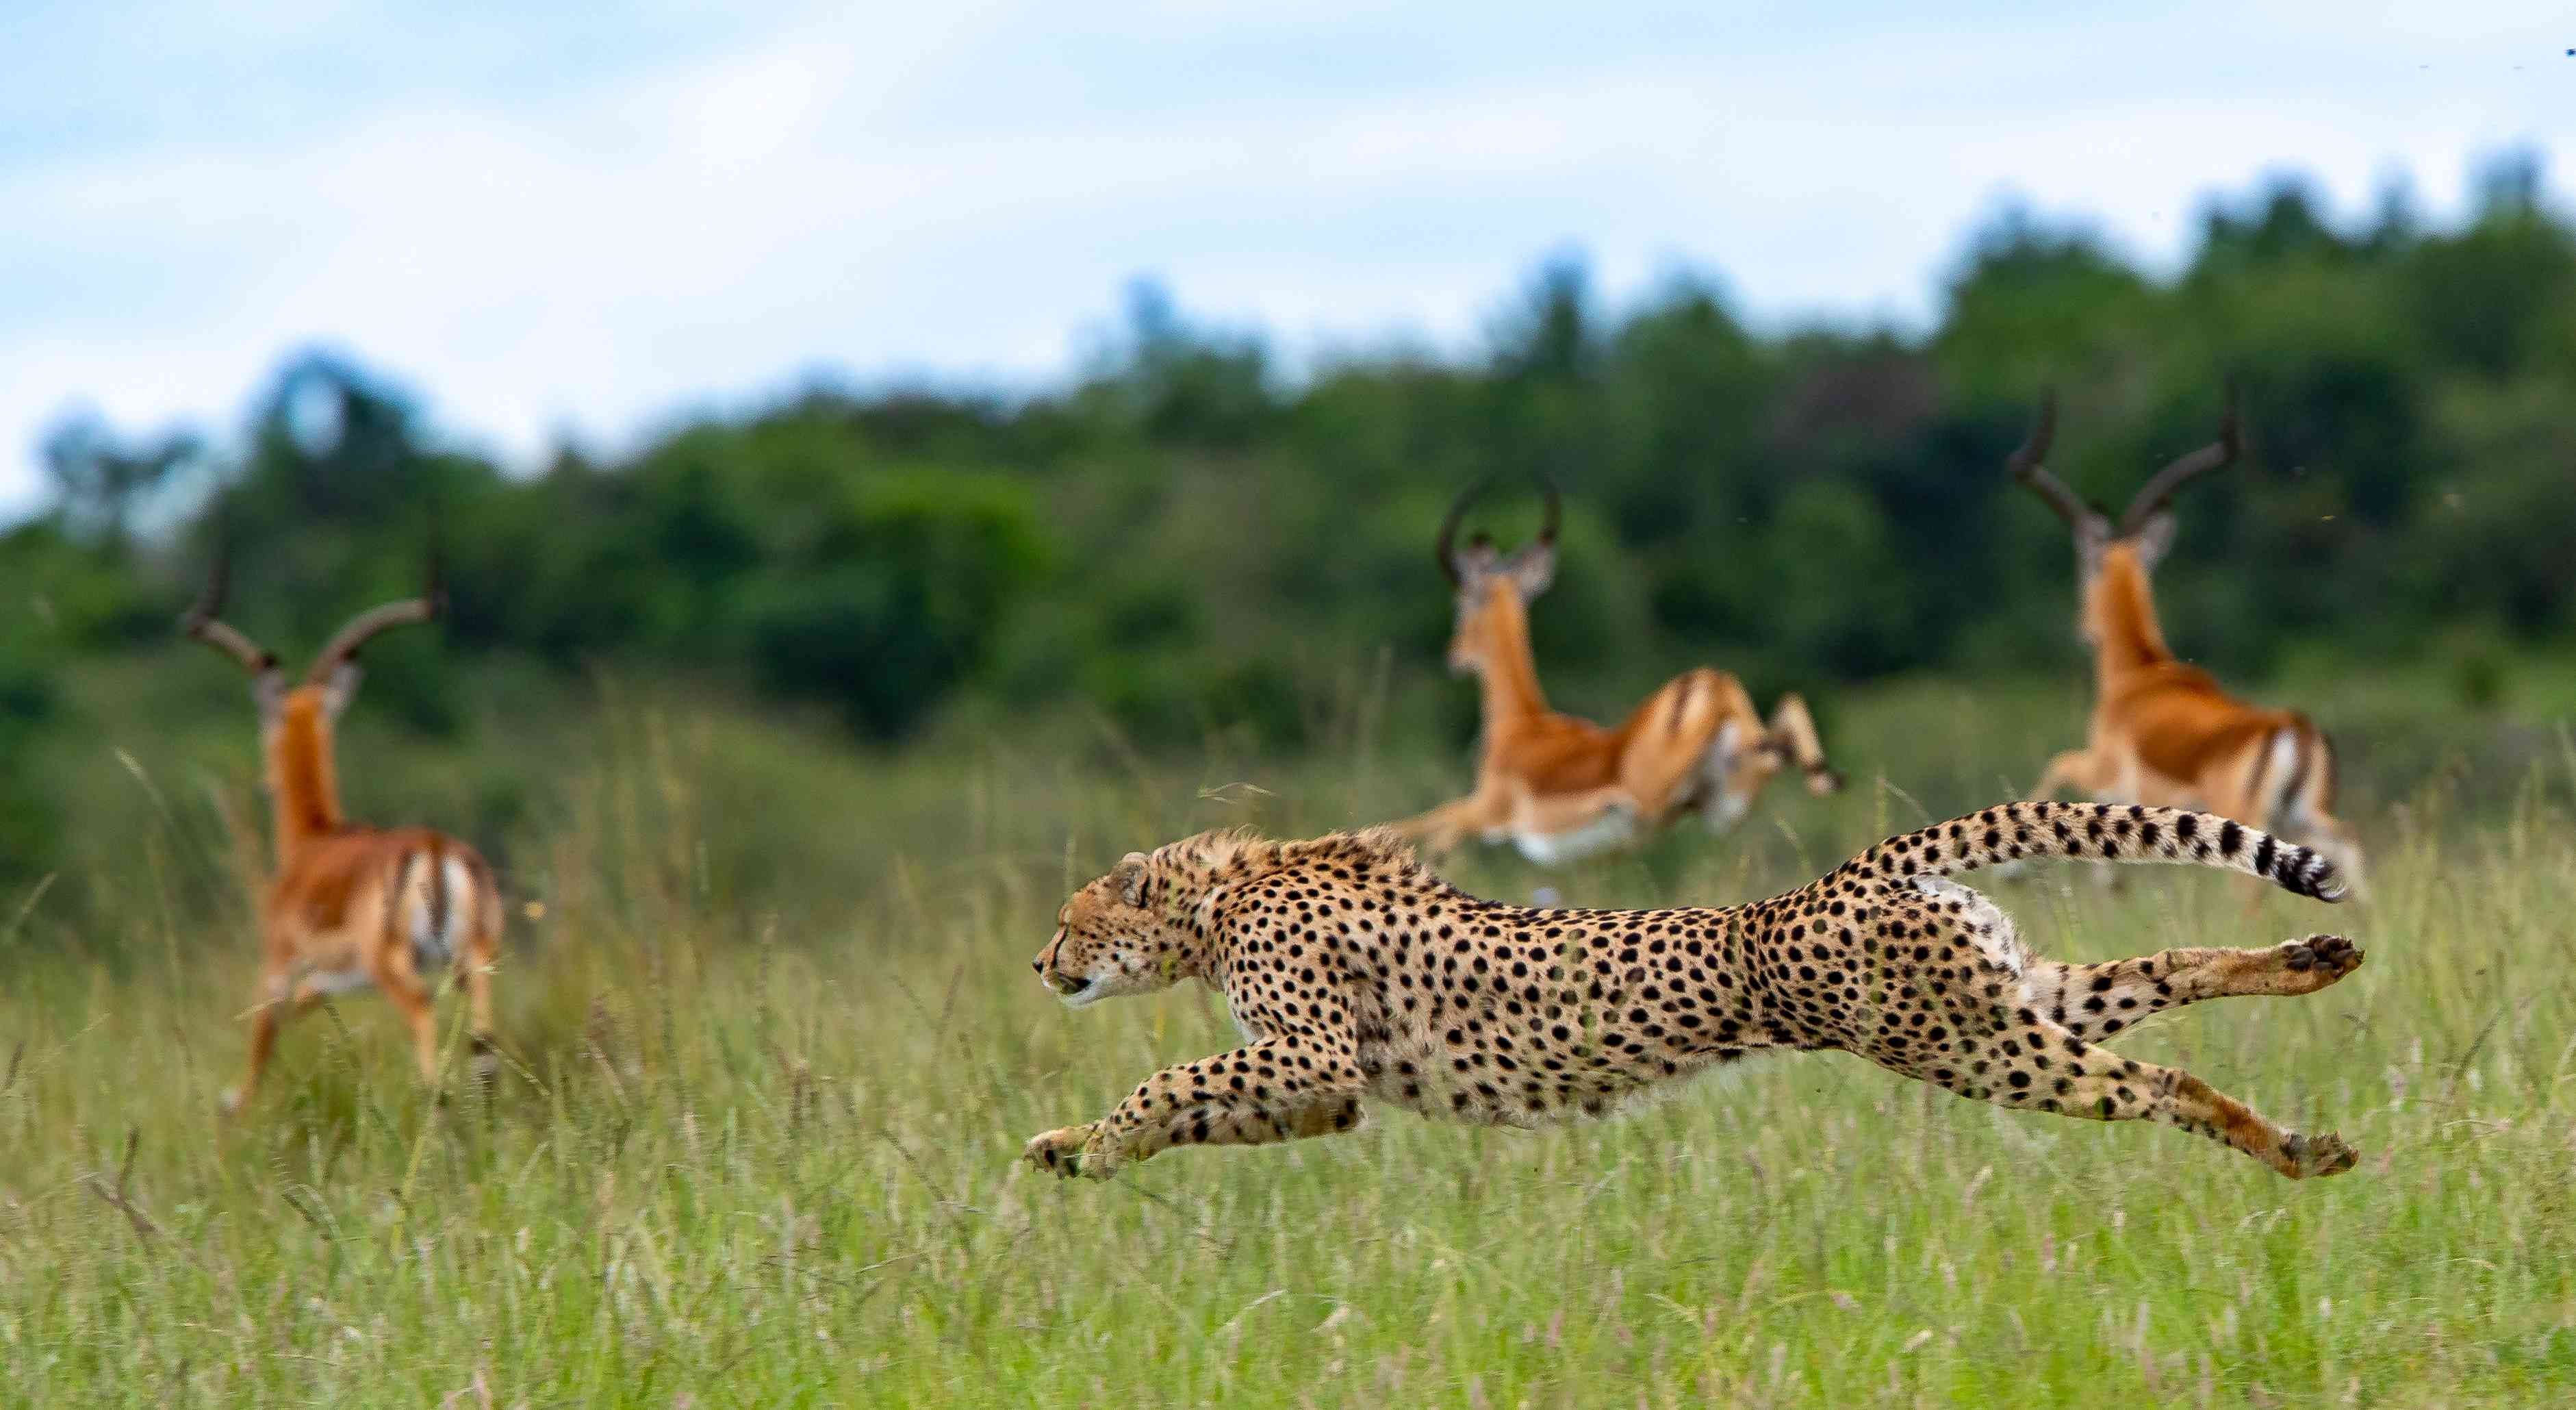 Side View Of Cheetah Running On Grassy Field Against Sky